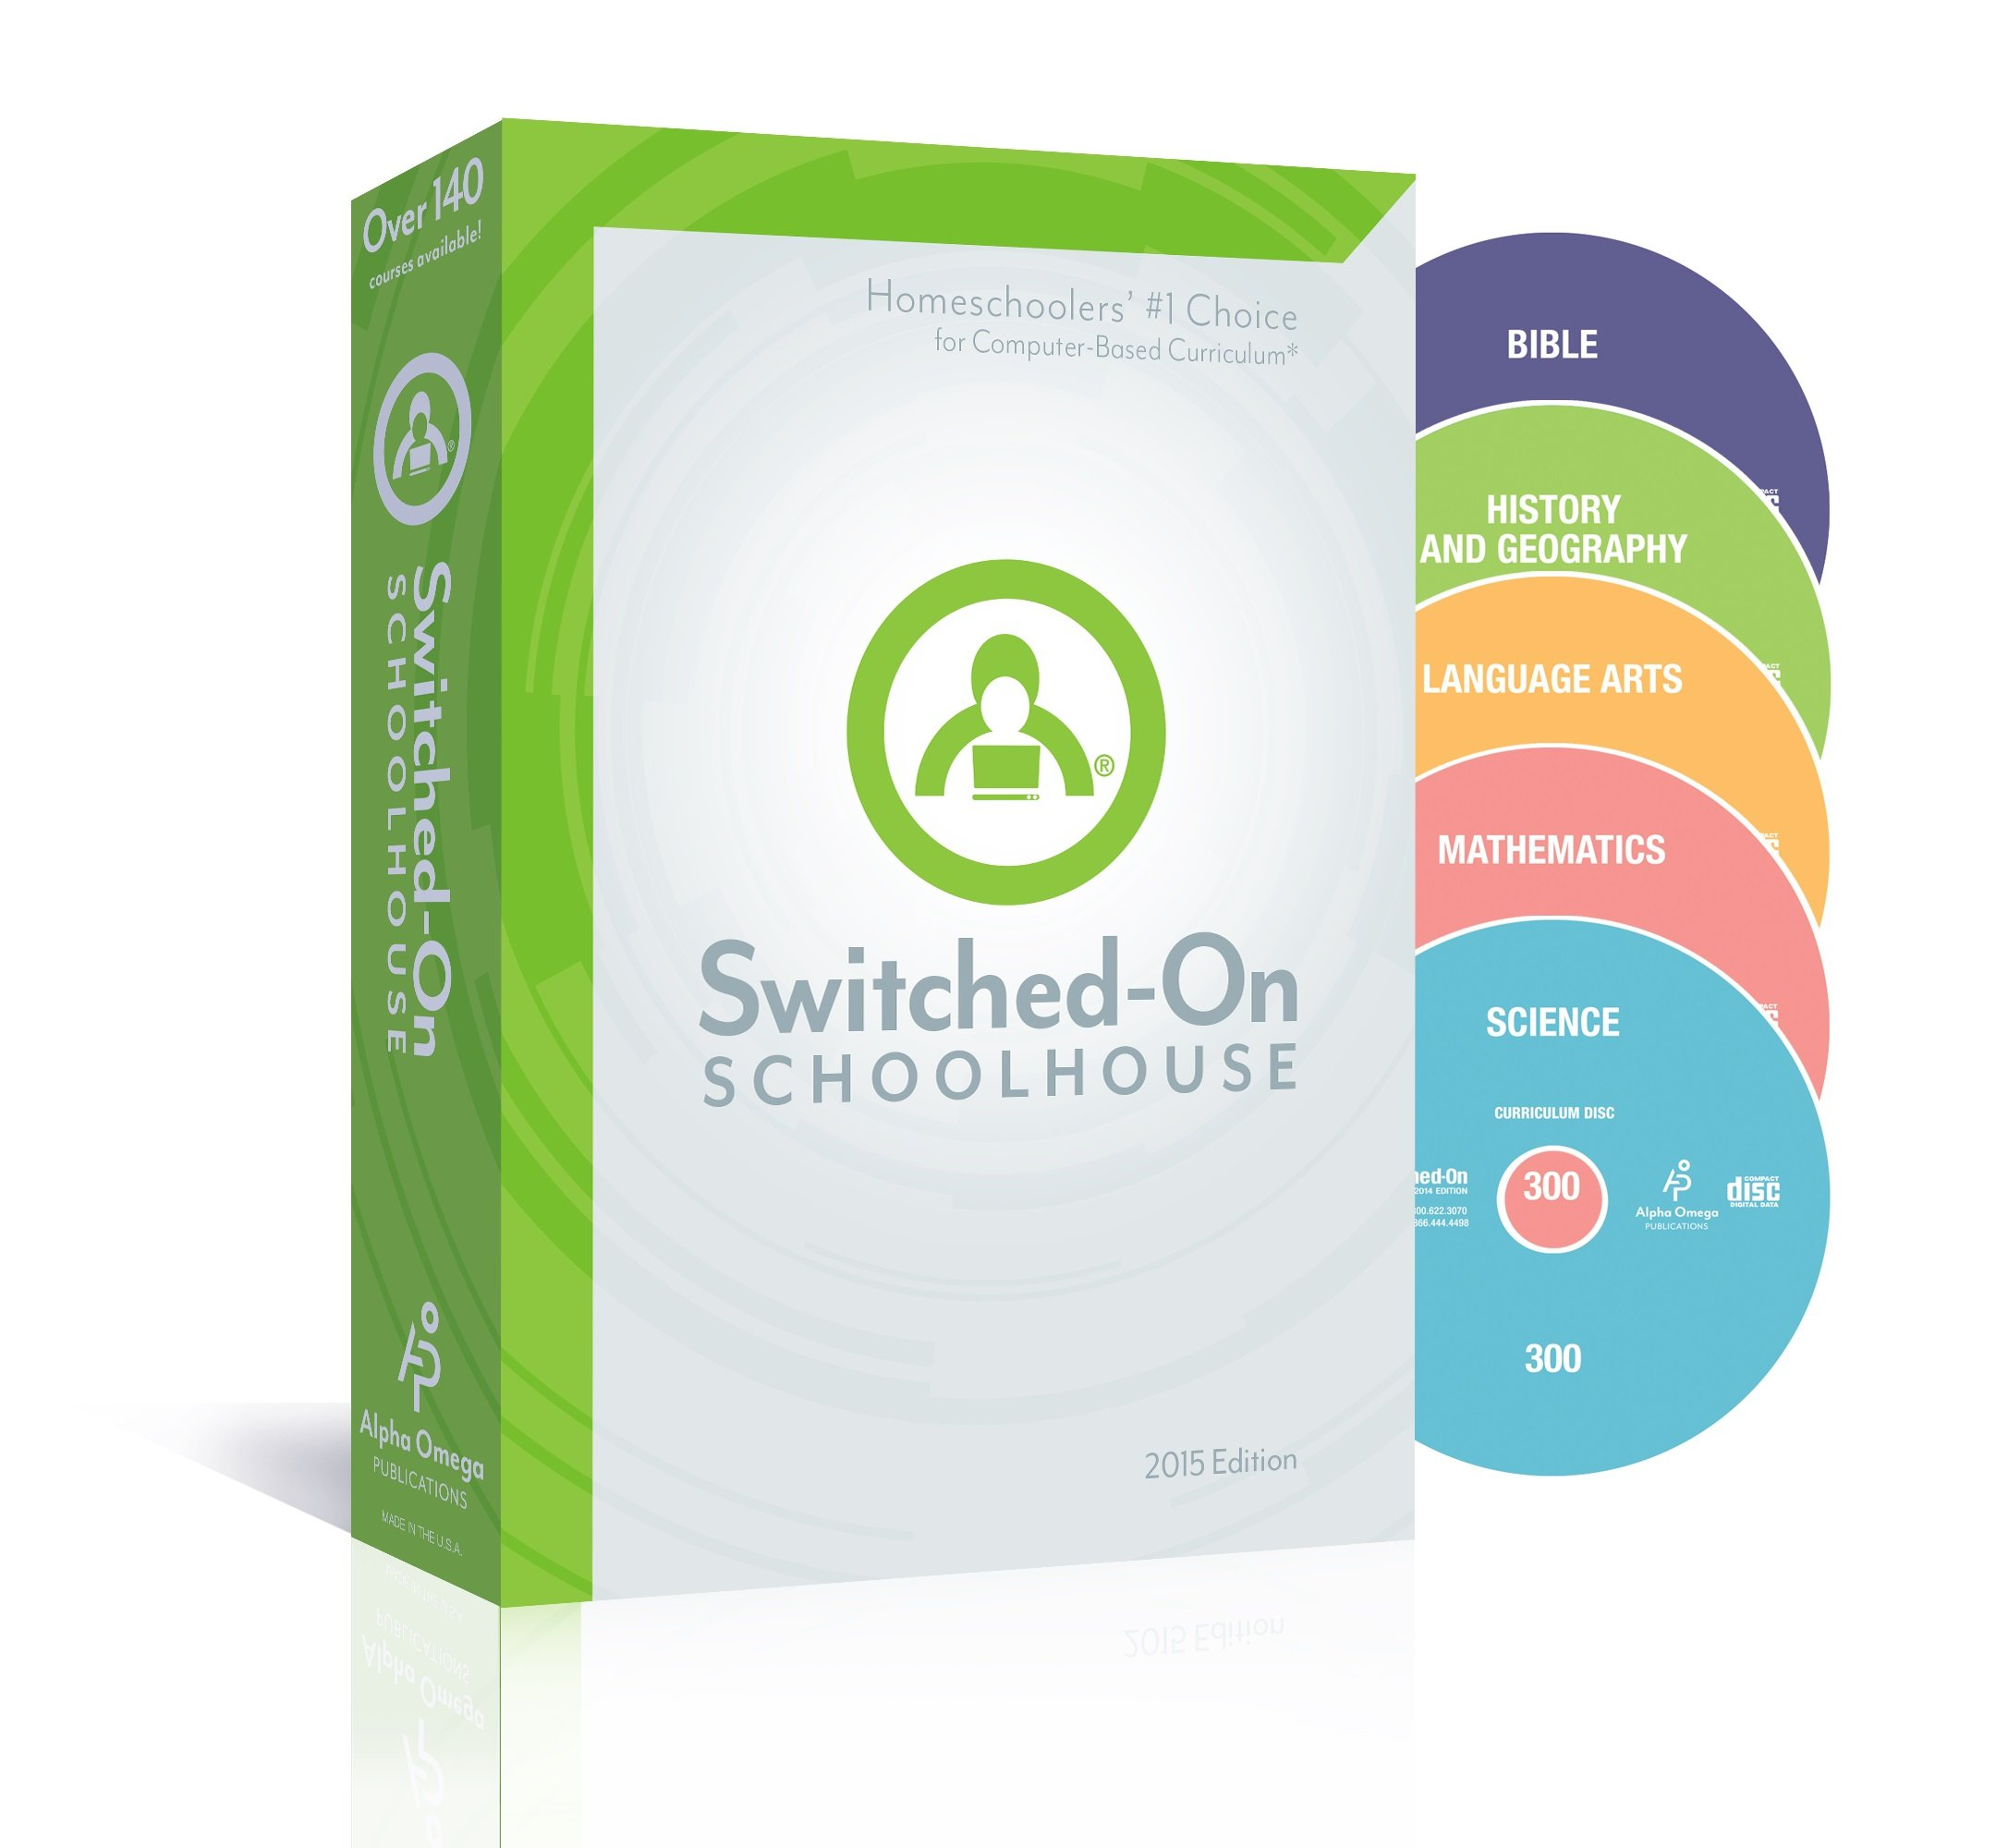 2015 Switched on Schoolhouse, Grade 9, AOP 5-Subject Set - Math, Language, Science, History / Geography & Bible (Alpha Omega HomeSchooling), SOS 9TH GRADE CD-ROM Curriculum, Complete Set